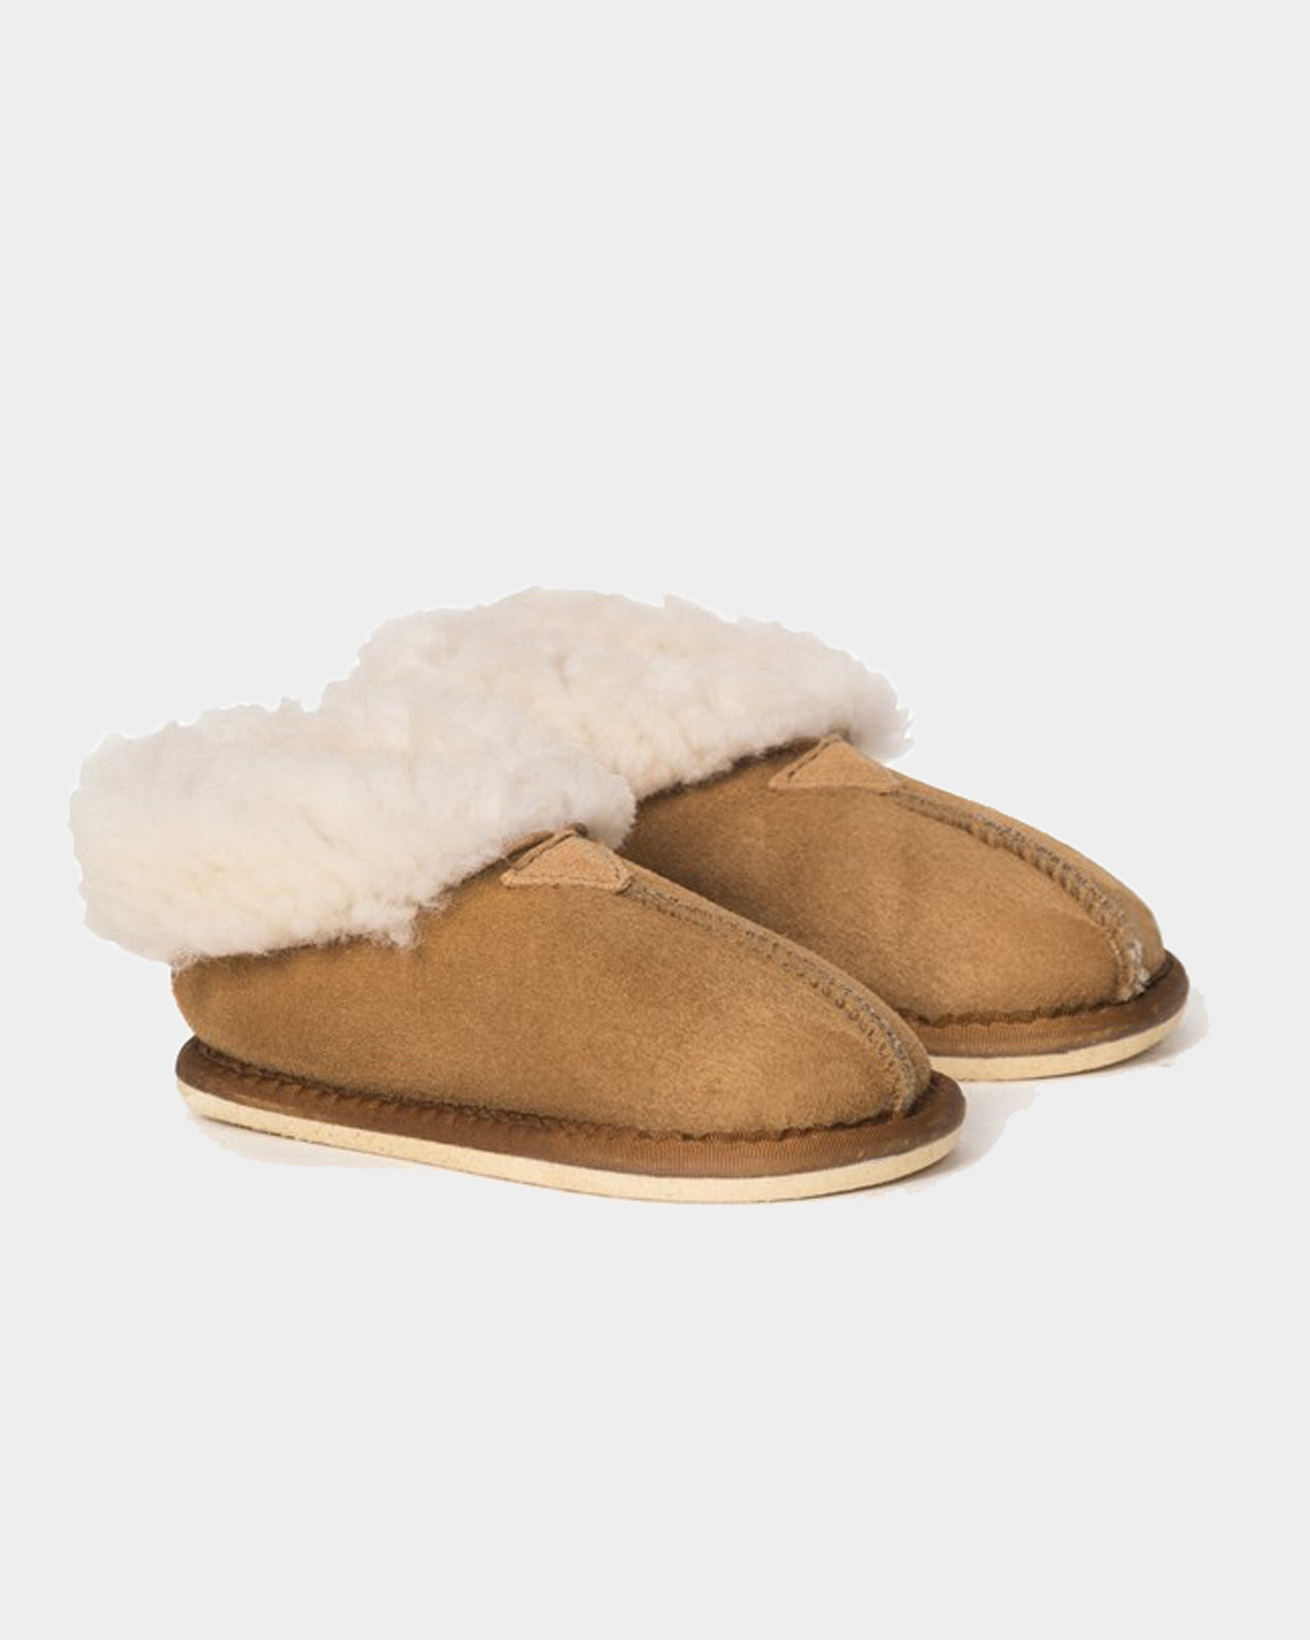 2460-kids-sheepskin-slippers-bootees-spice-1.jpg